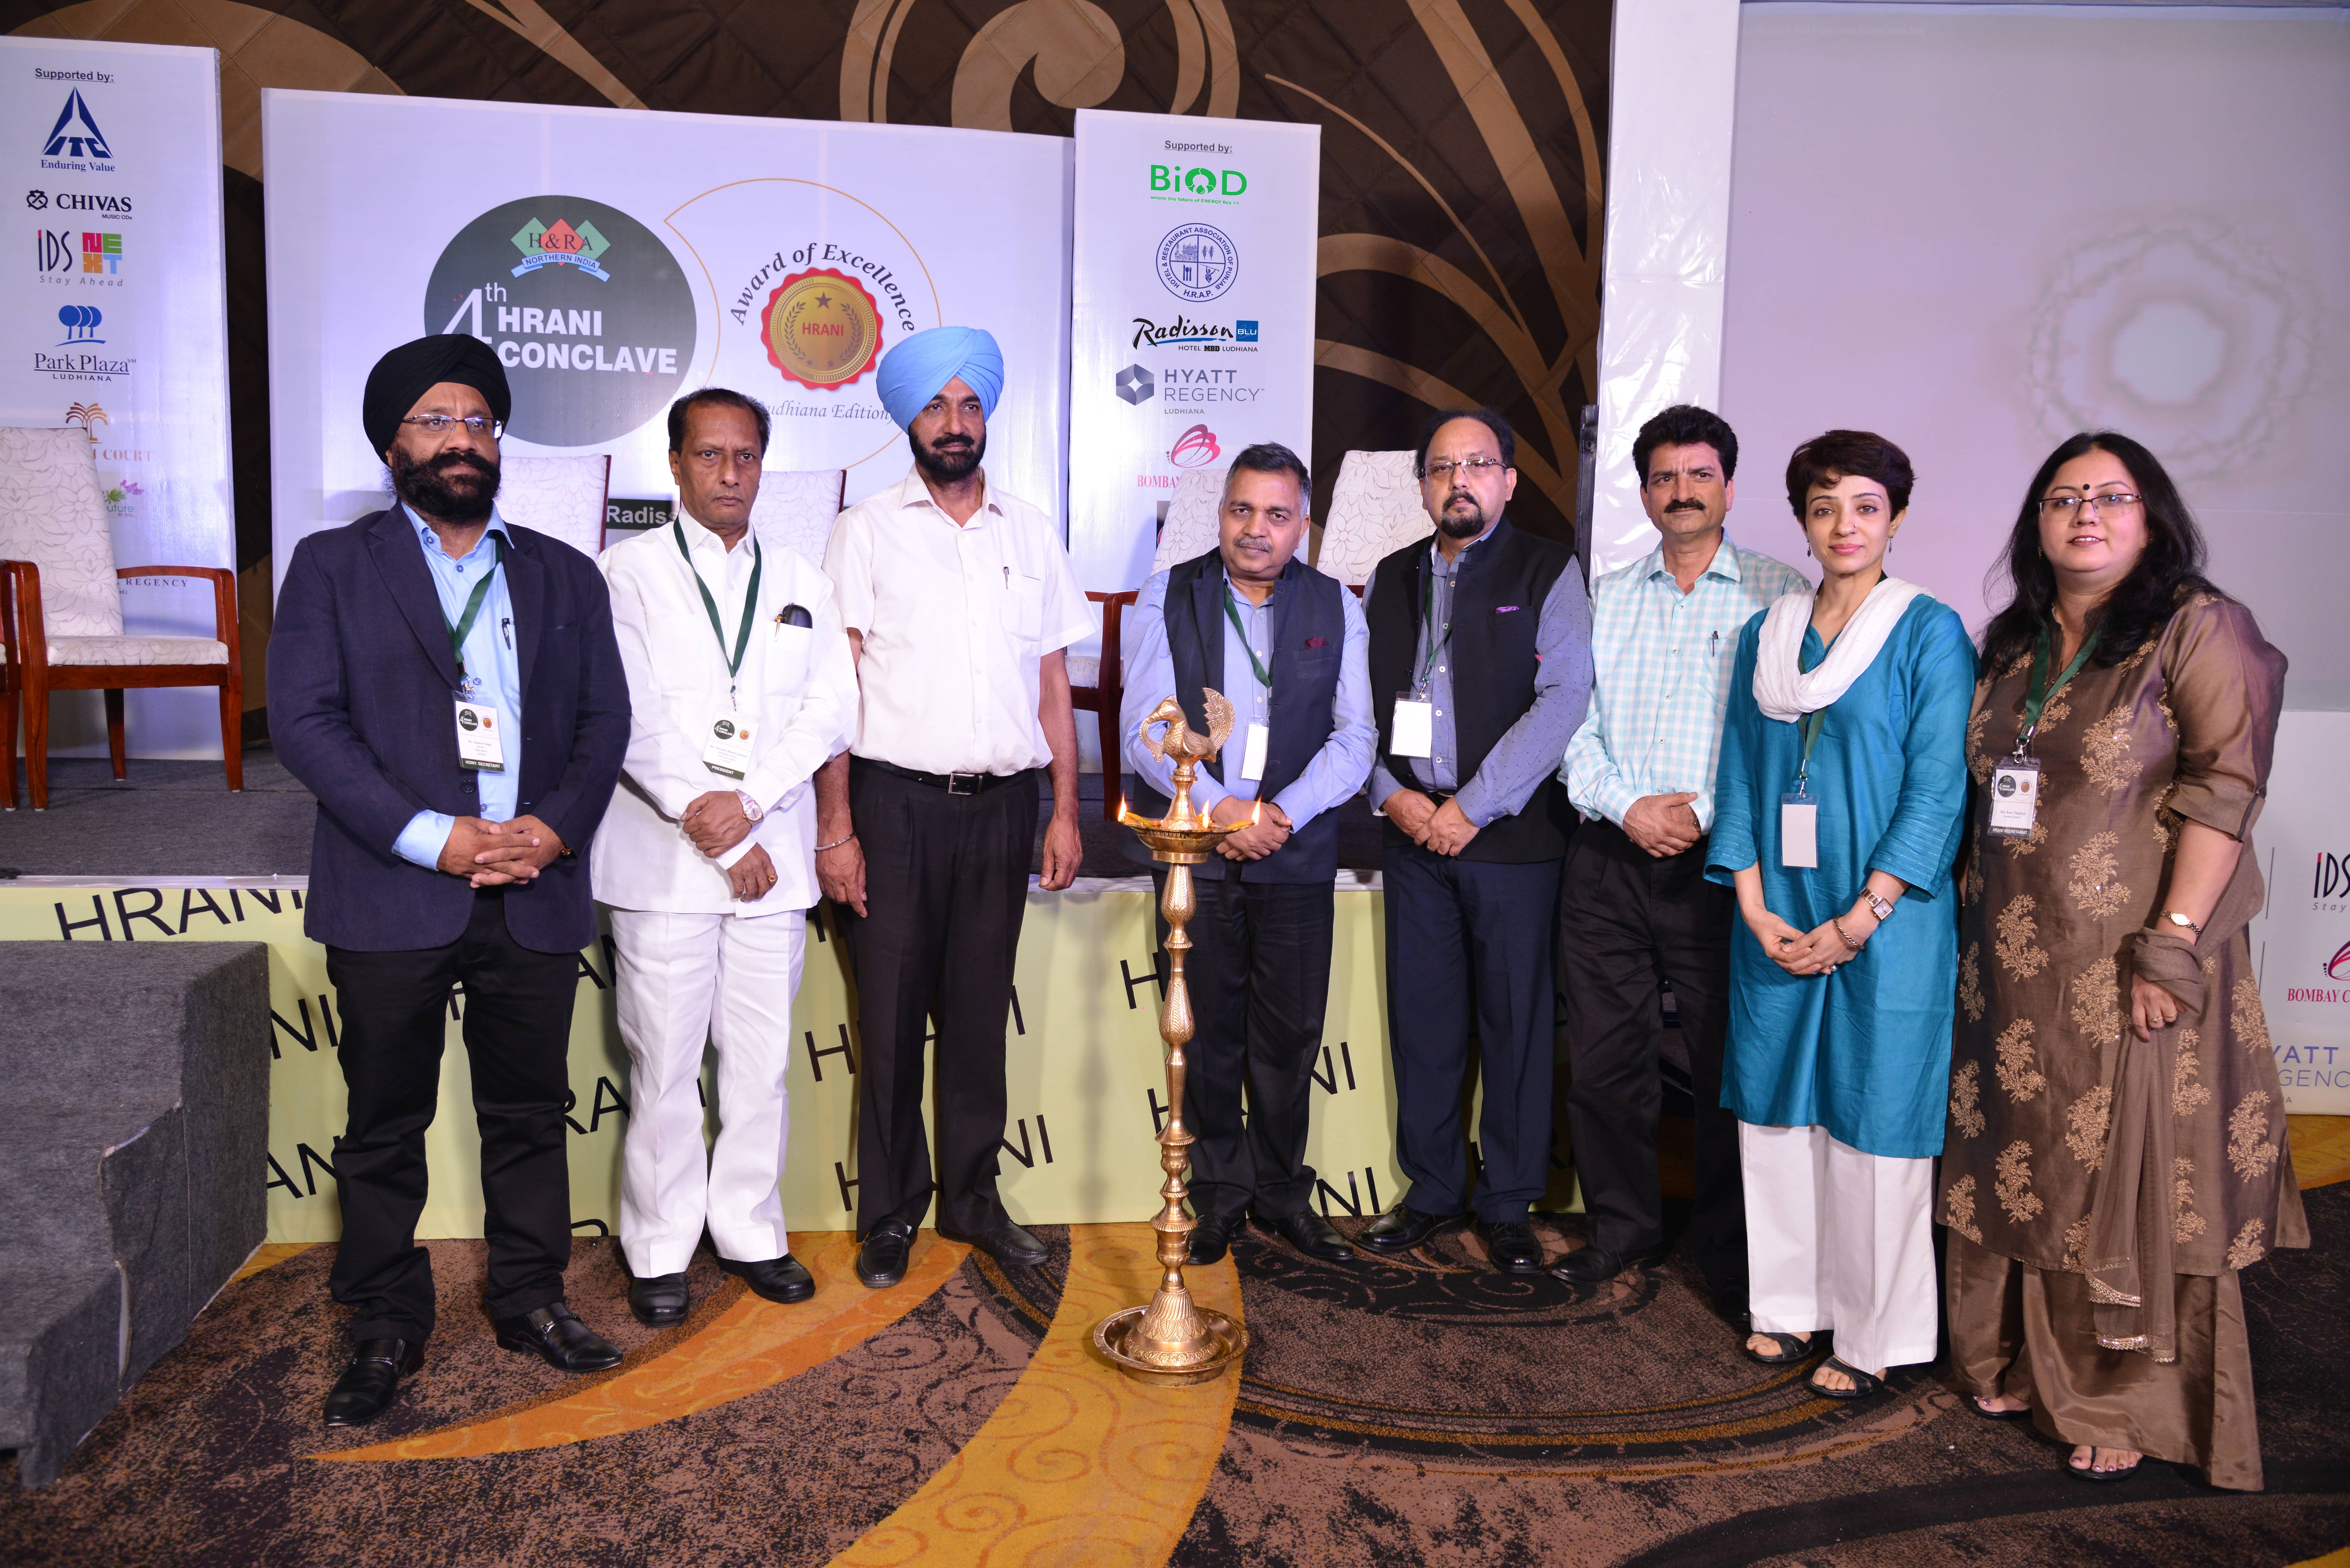 HRANI holds 4th Conclave in Ludhiana